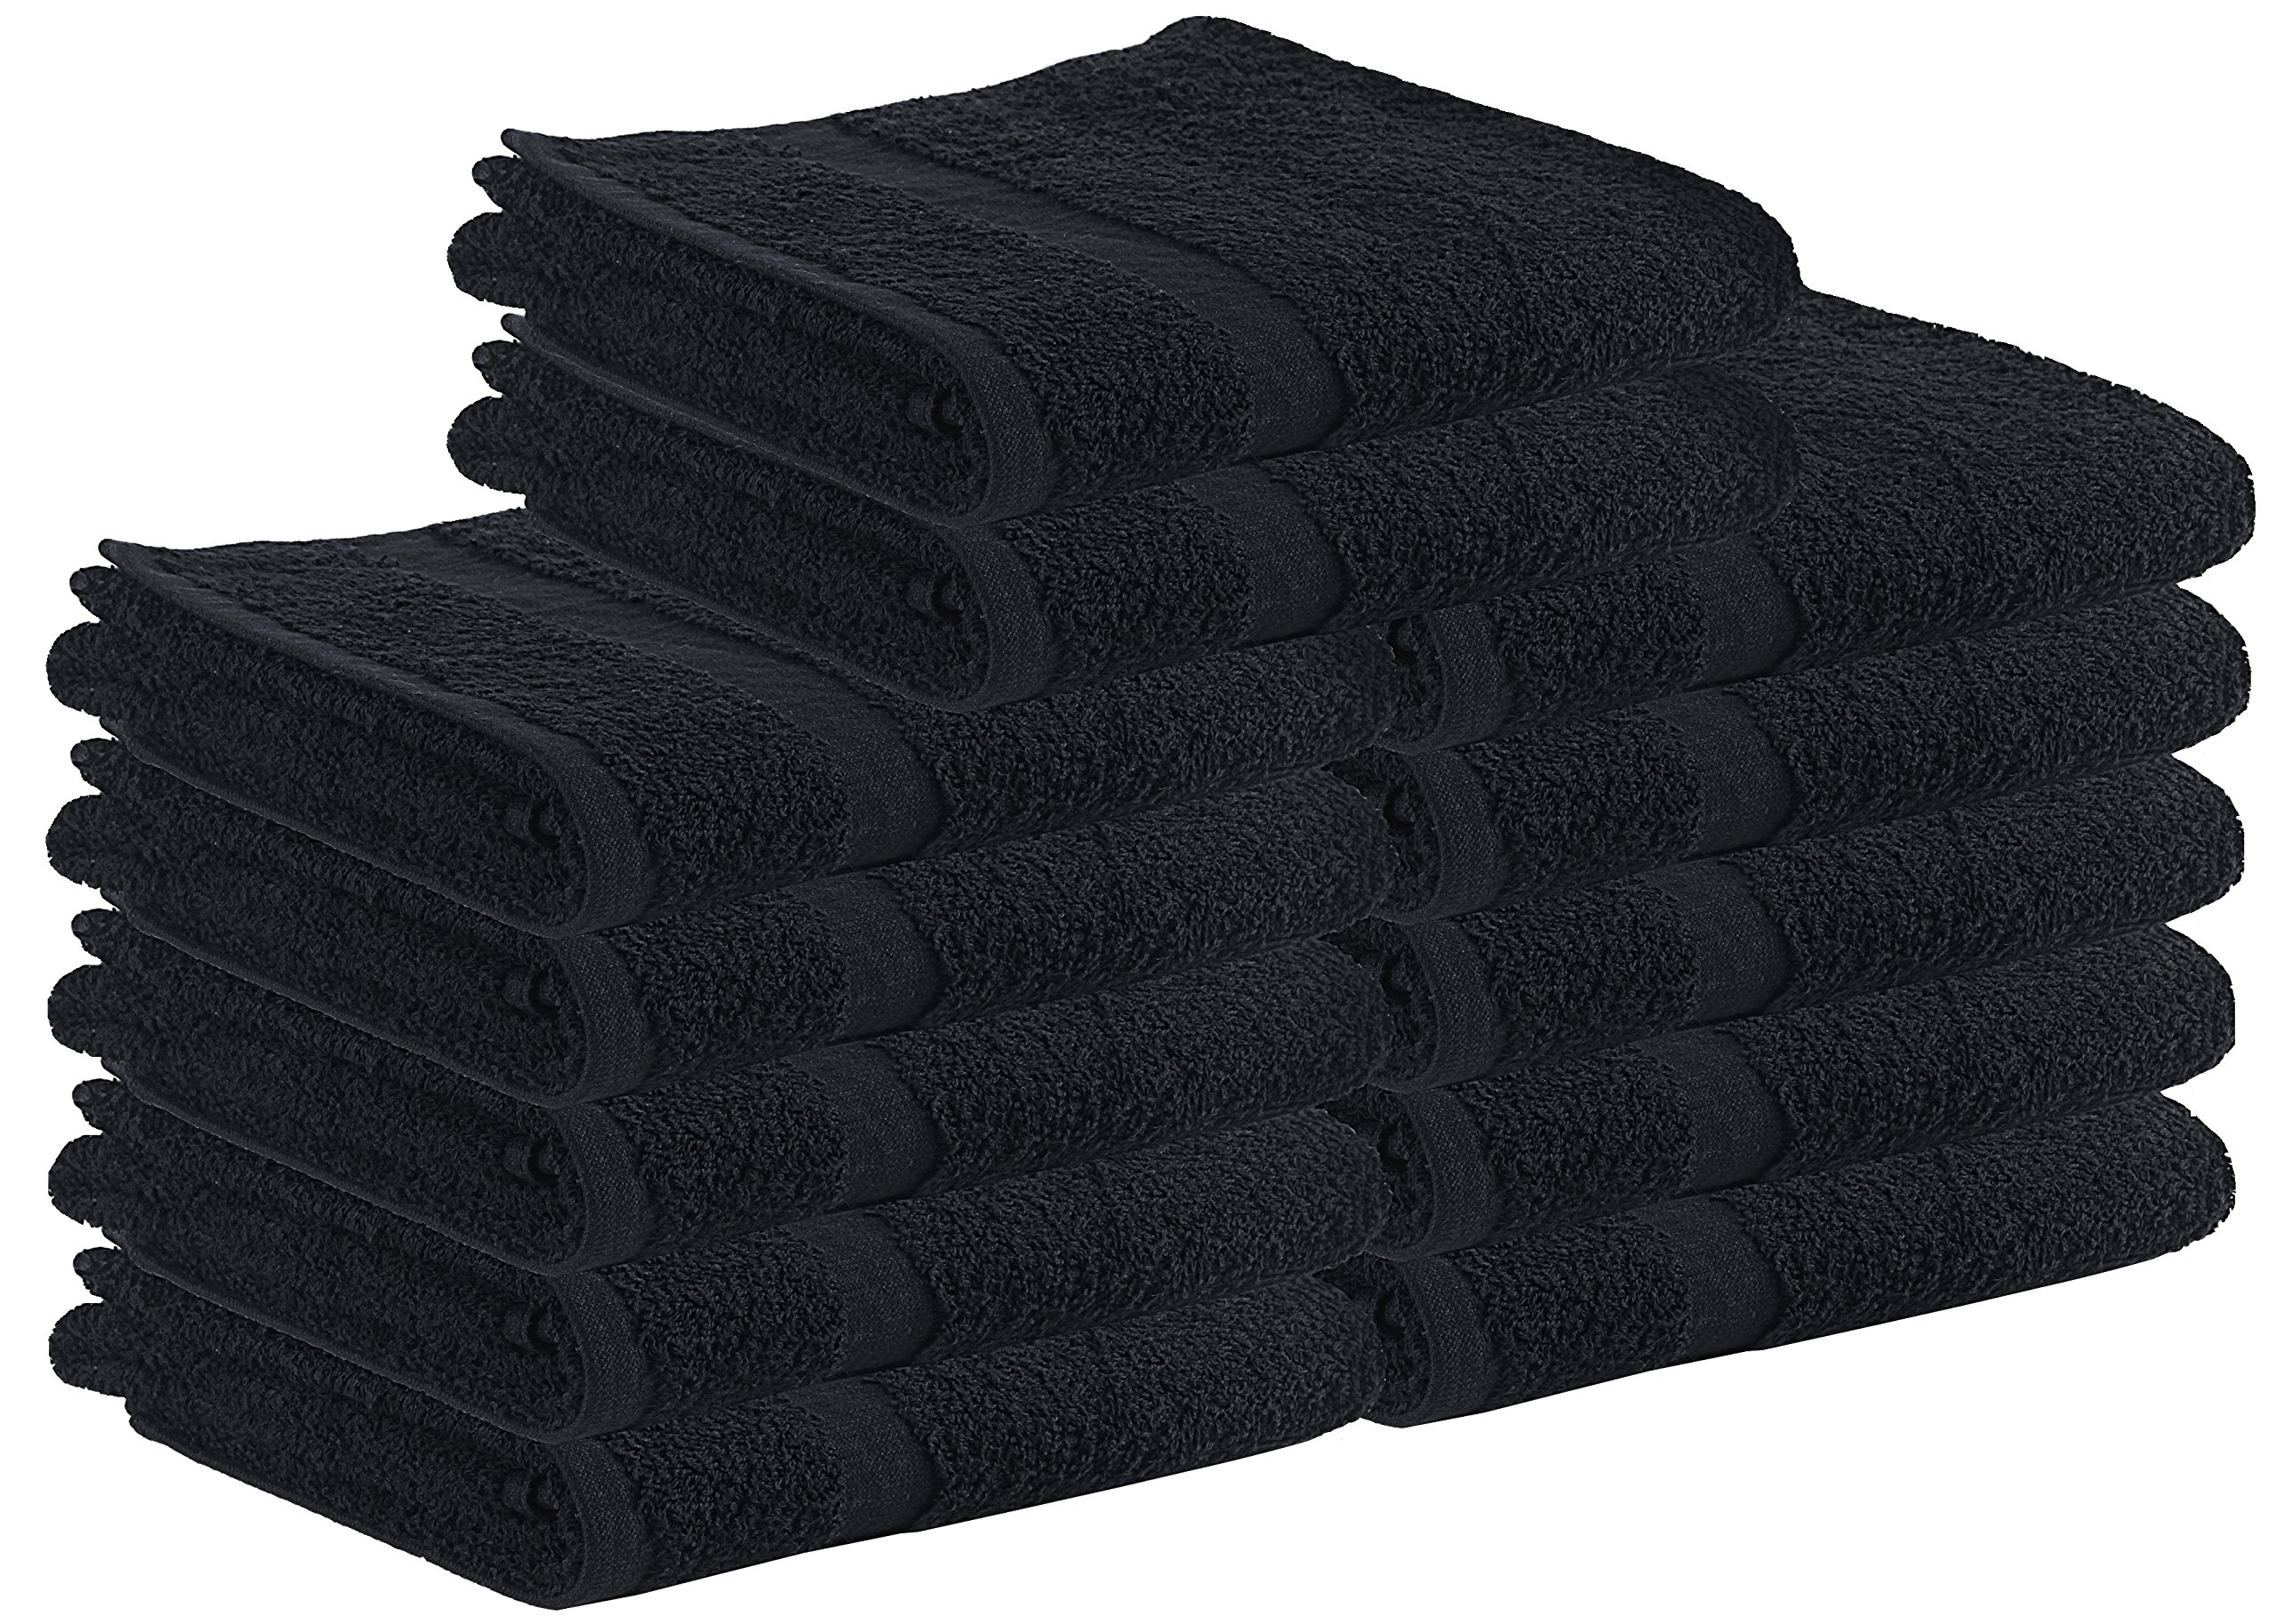 Cotton Salon Towels - Gym Towel - Hand Towel - (24-Pack, Black) - 16 inches x 27 inches - Not Bleach Proof - Ringspun-Cotton, Maximum Softness and Absorbency, Easy Care – by Utopia Towels